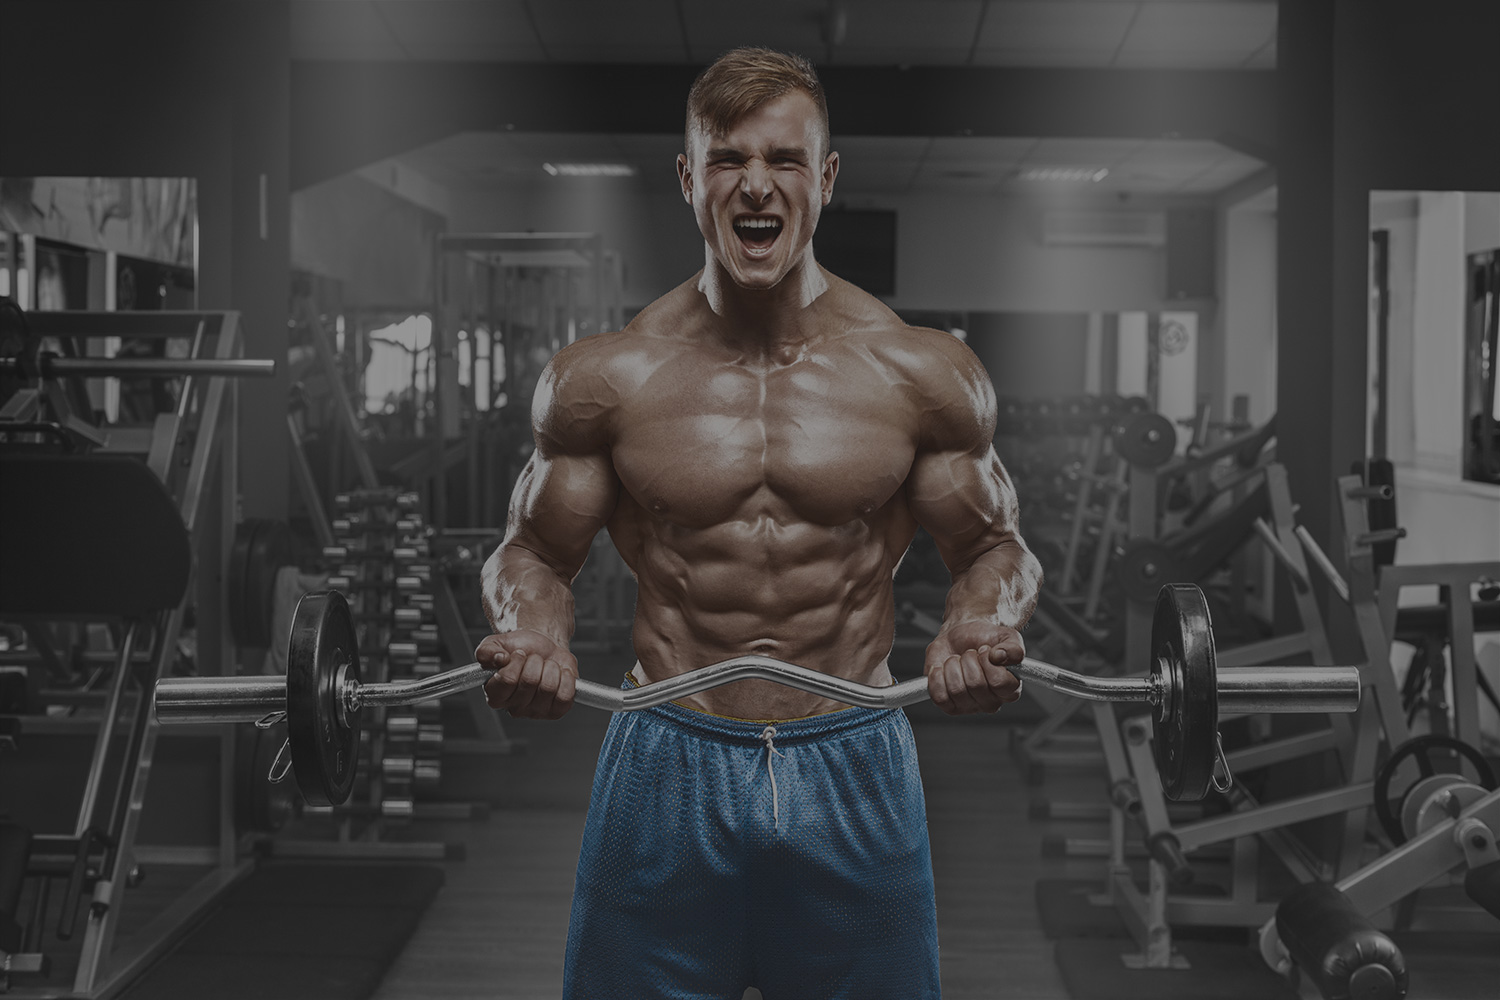 How Often Should You Change Your Workout Program